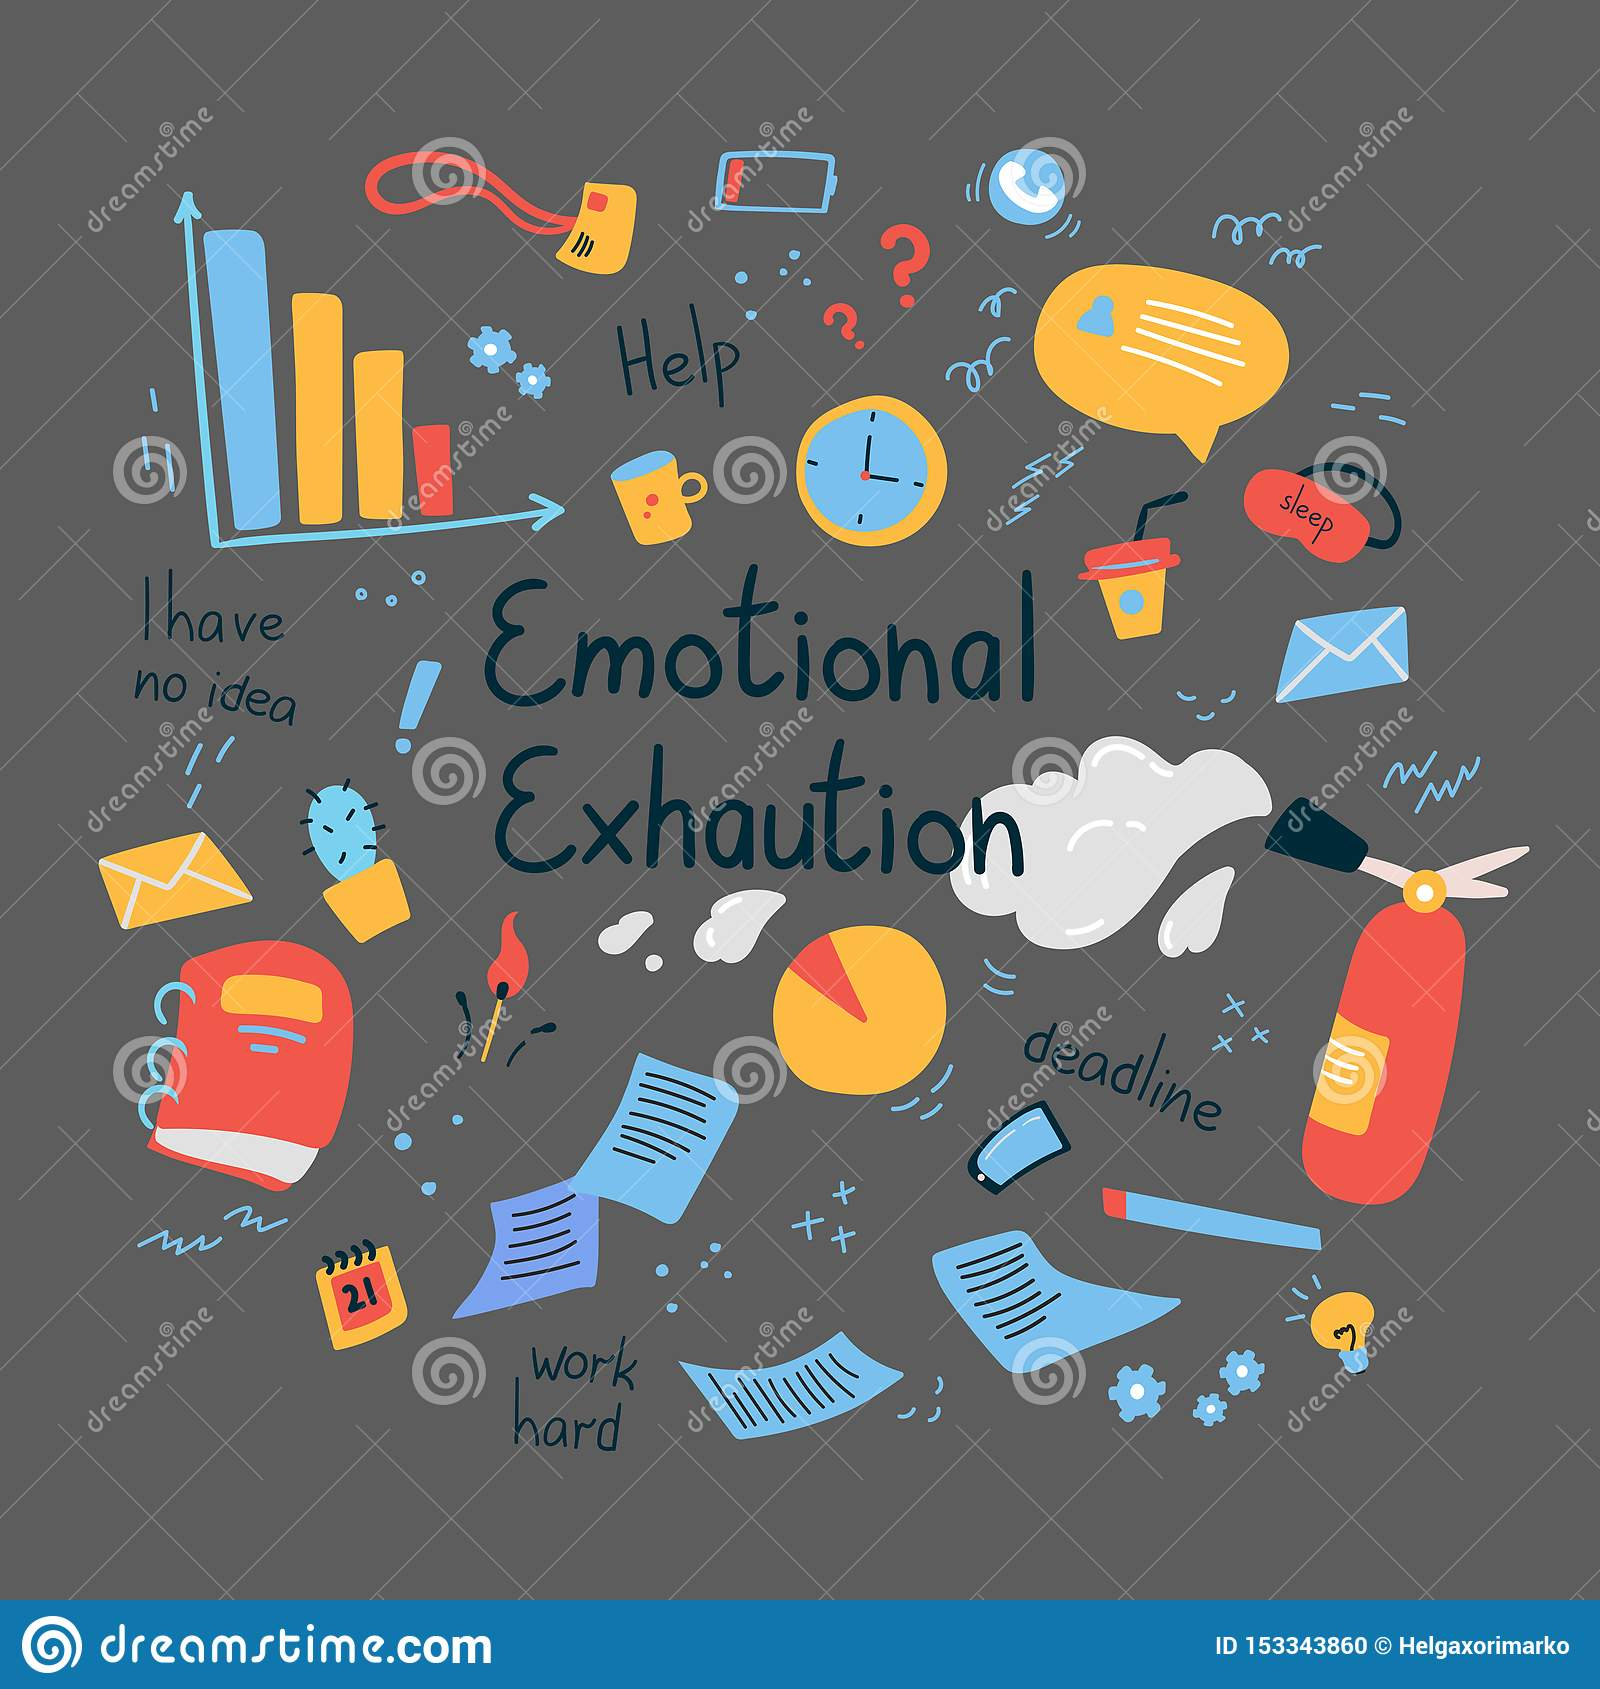 Emotional burning concept.Emotional exhaution text